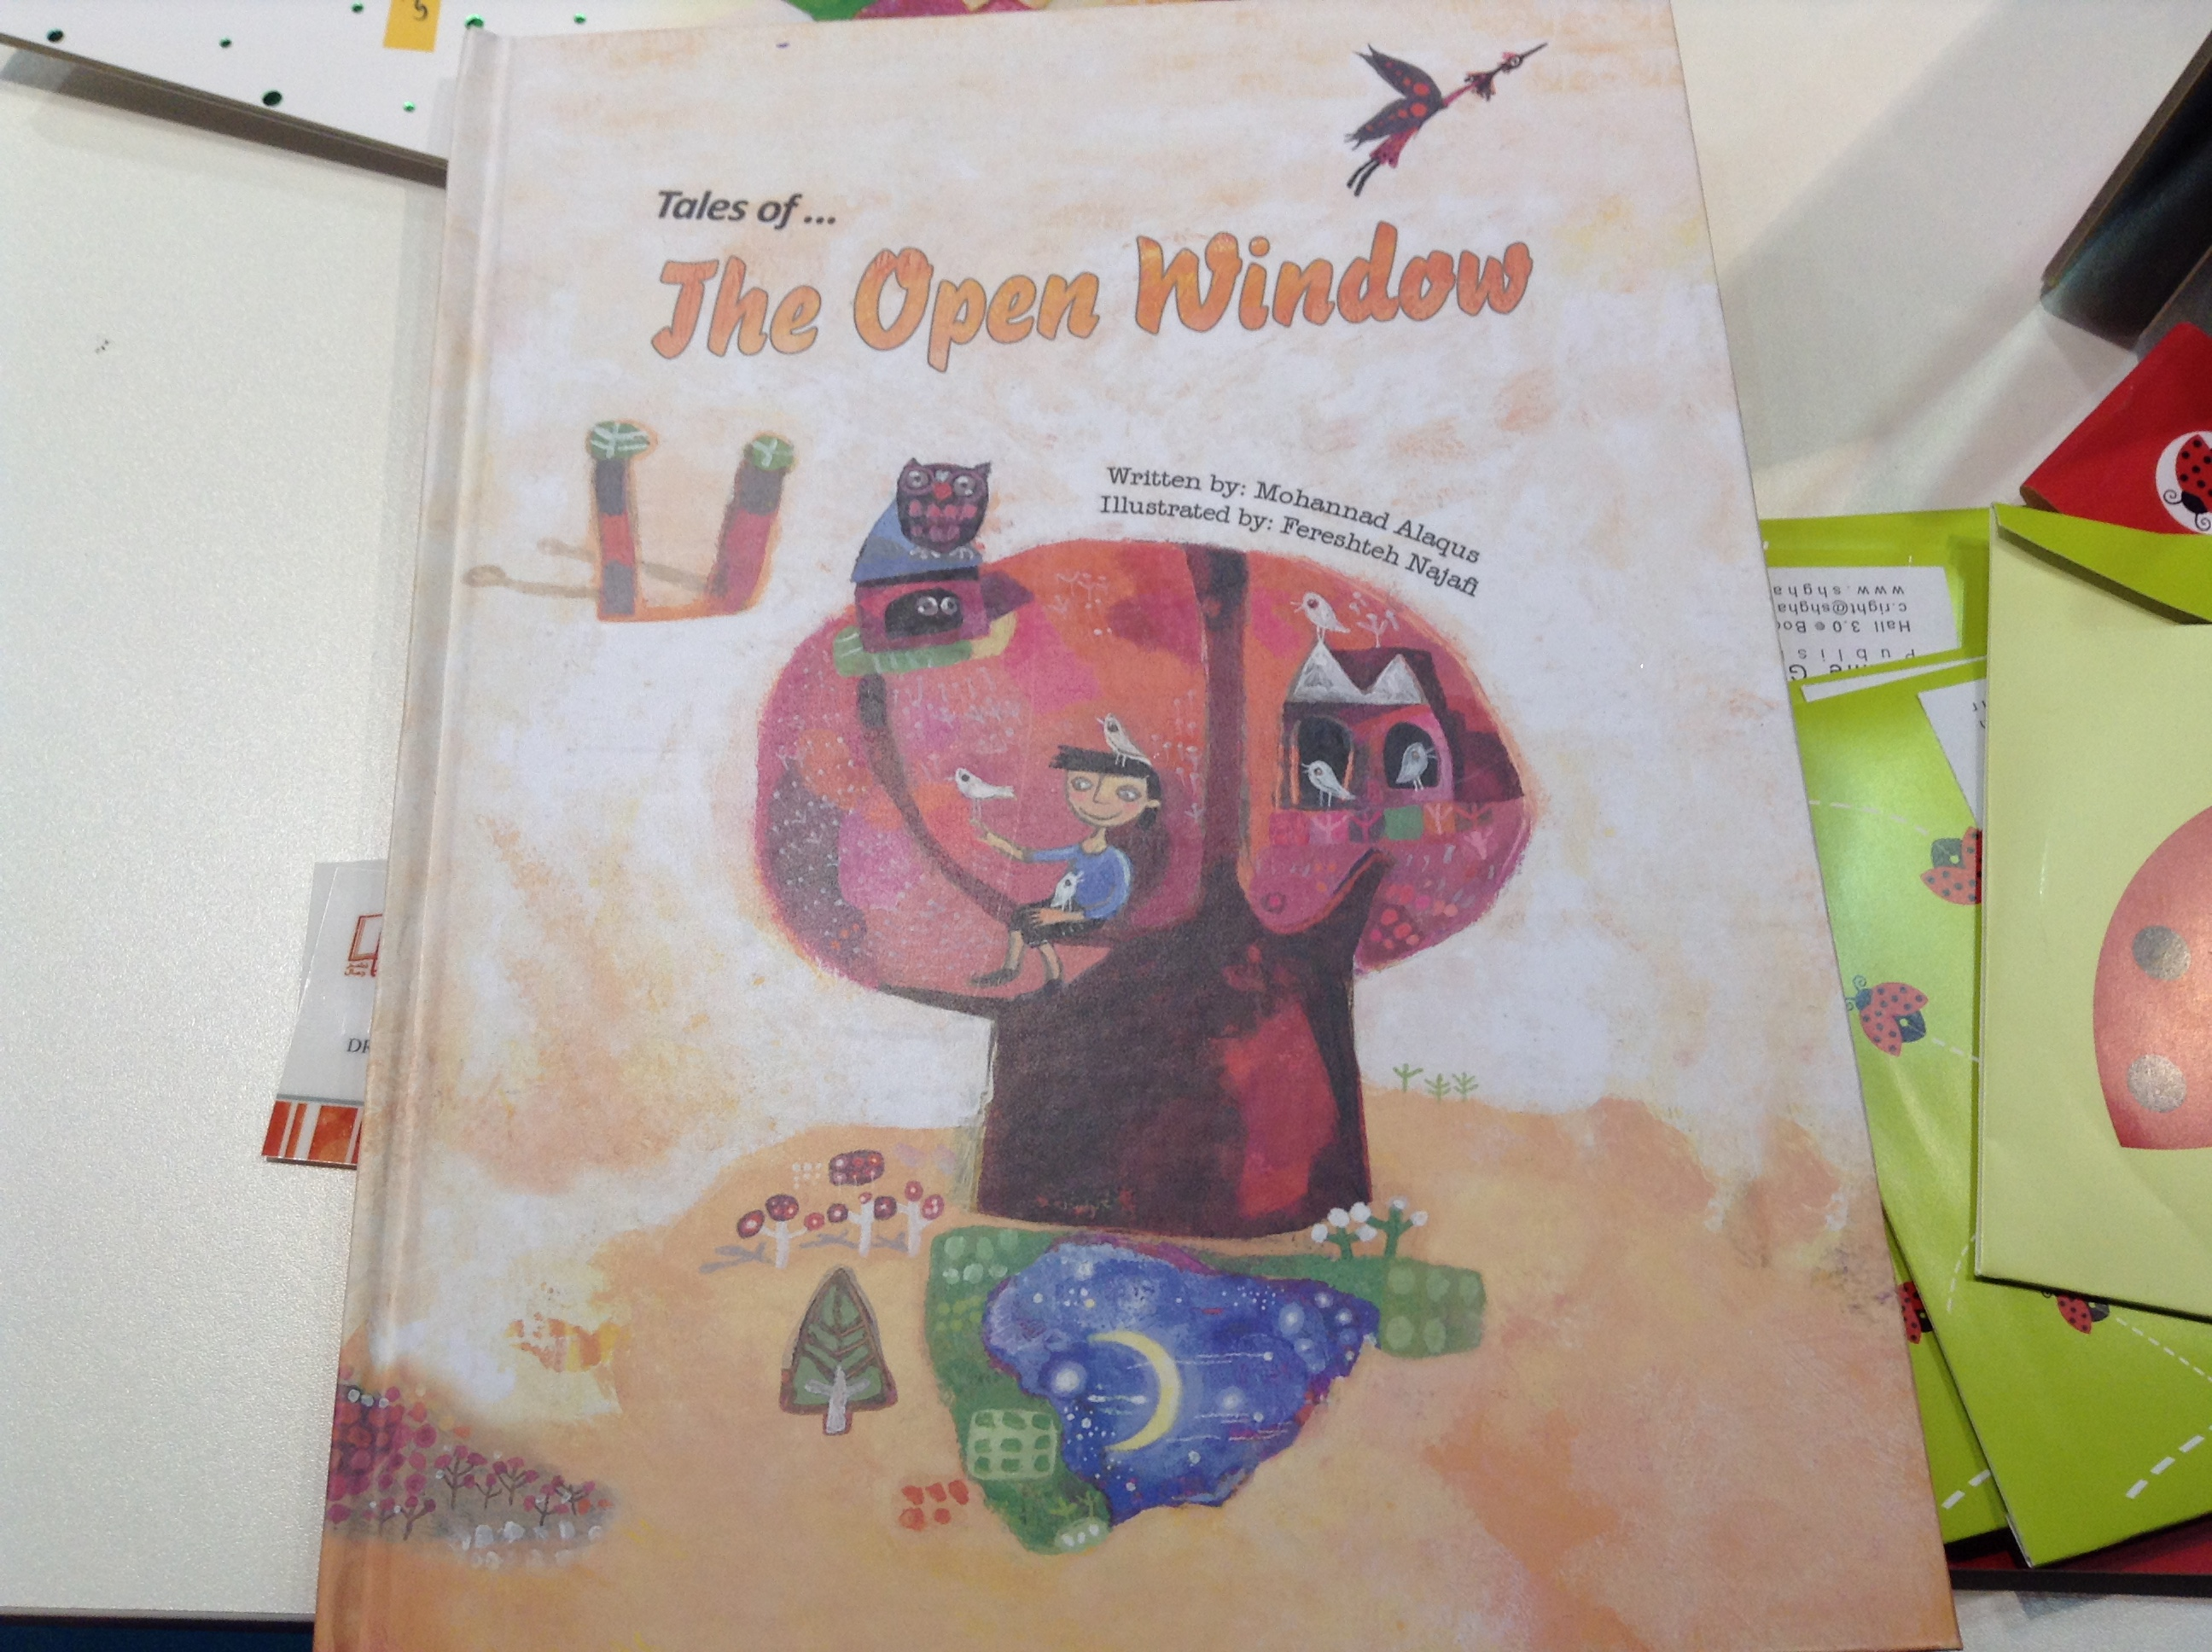 Tales of the Open Window